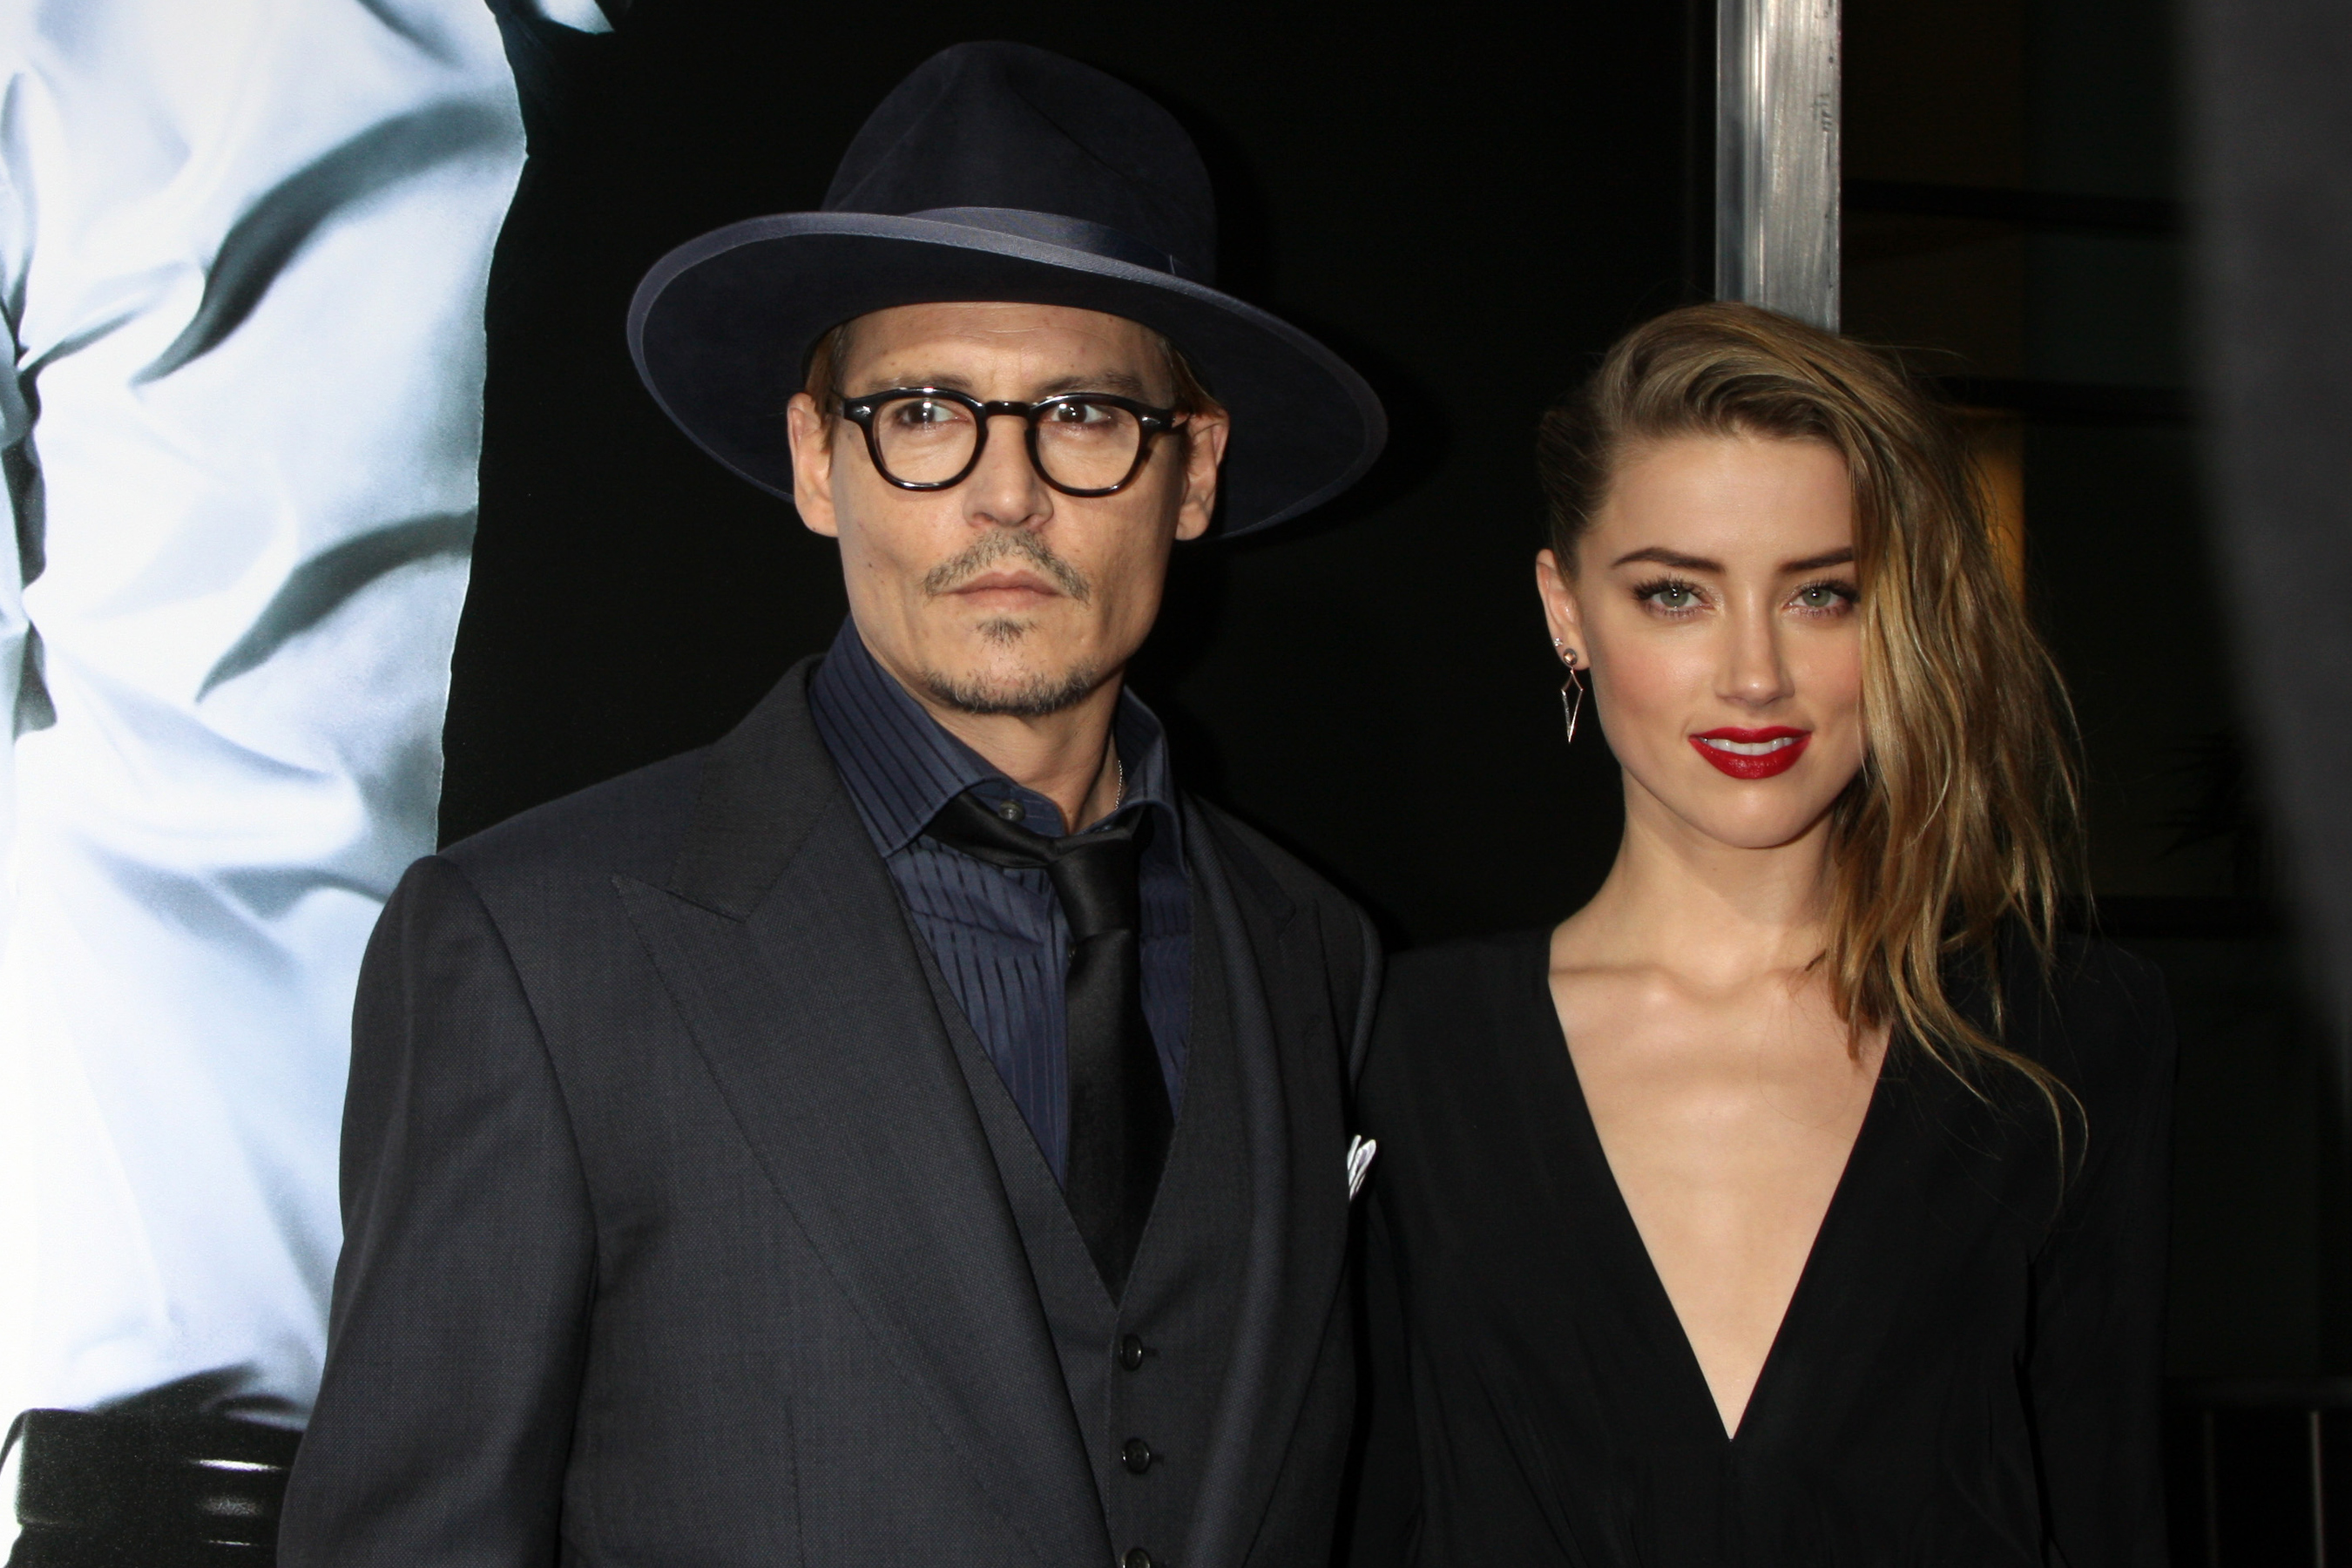 Amber Heard is doing something incredible with the money she got in her divorce from Johnny Depp